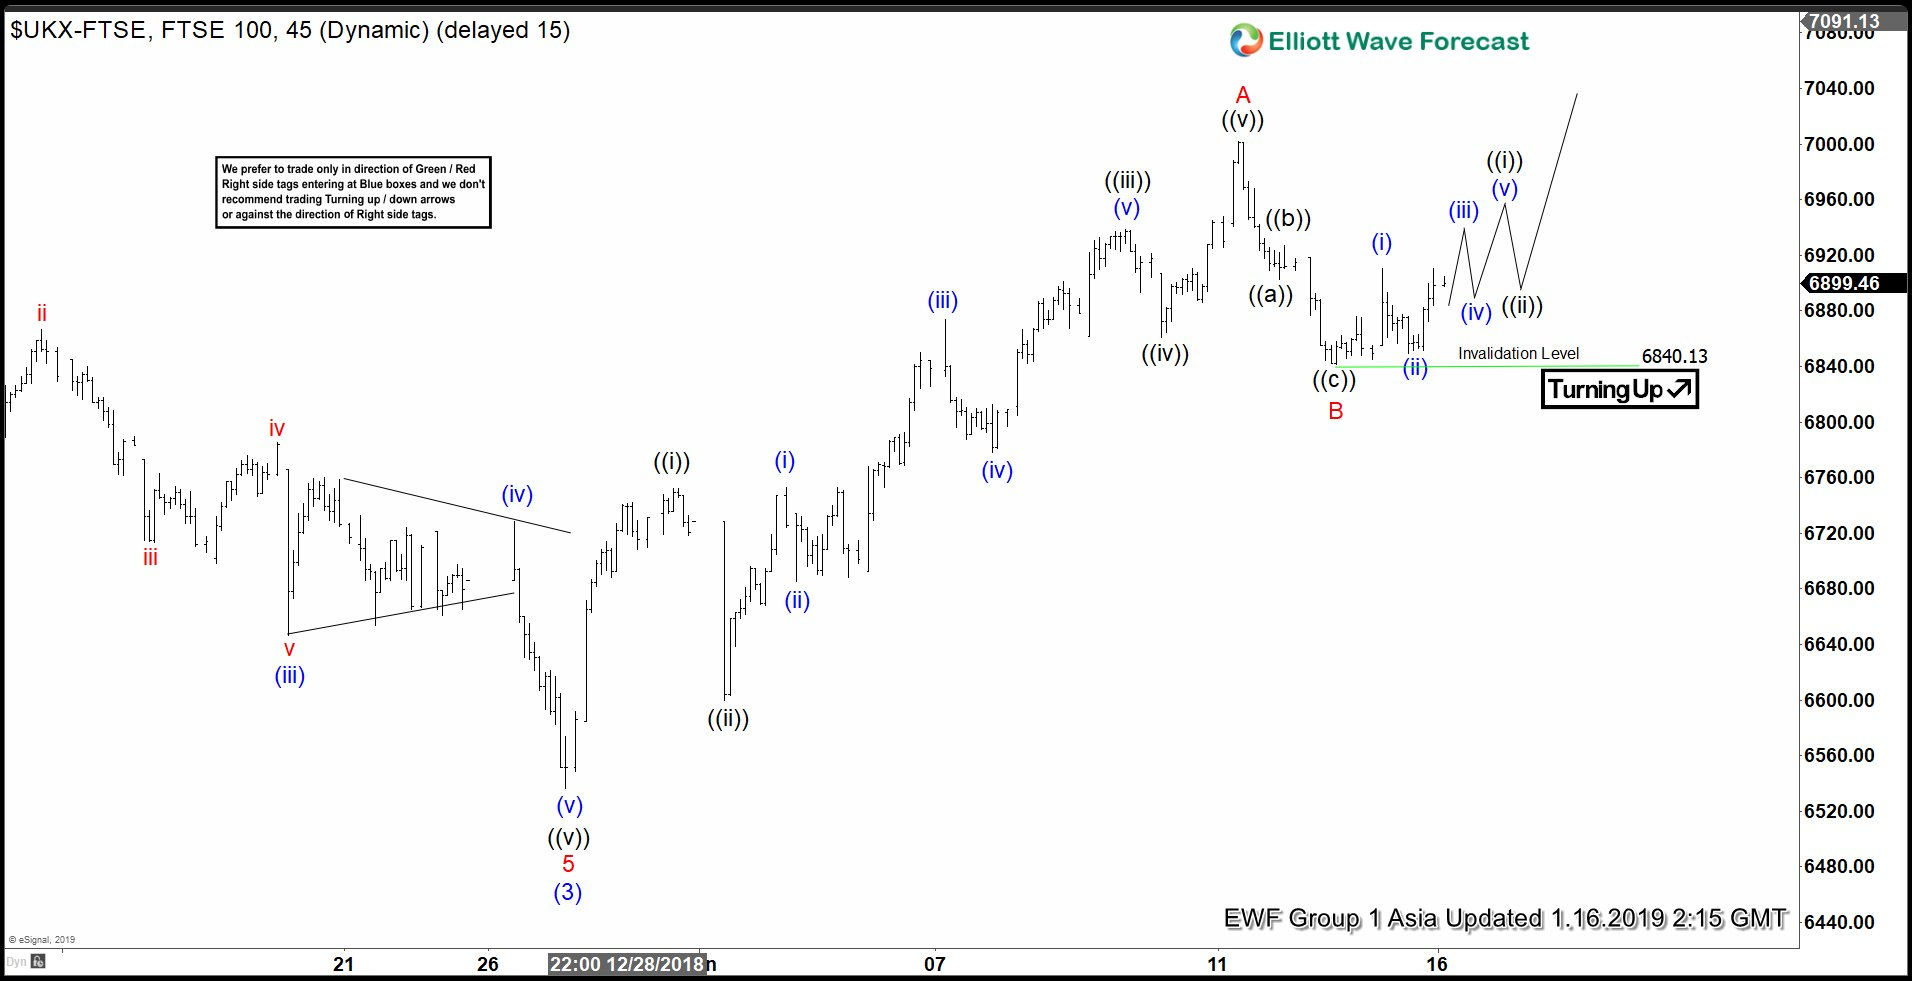 FTSE Elliott Wave View looking for further upside